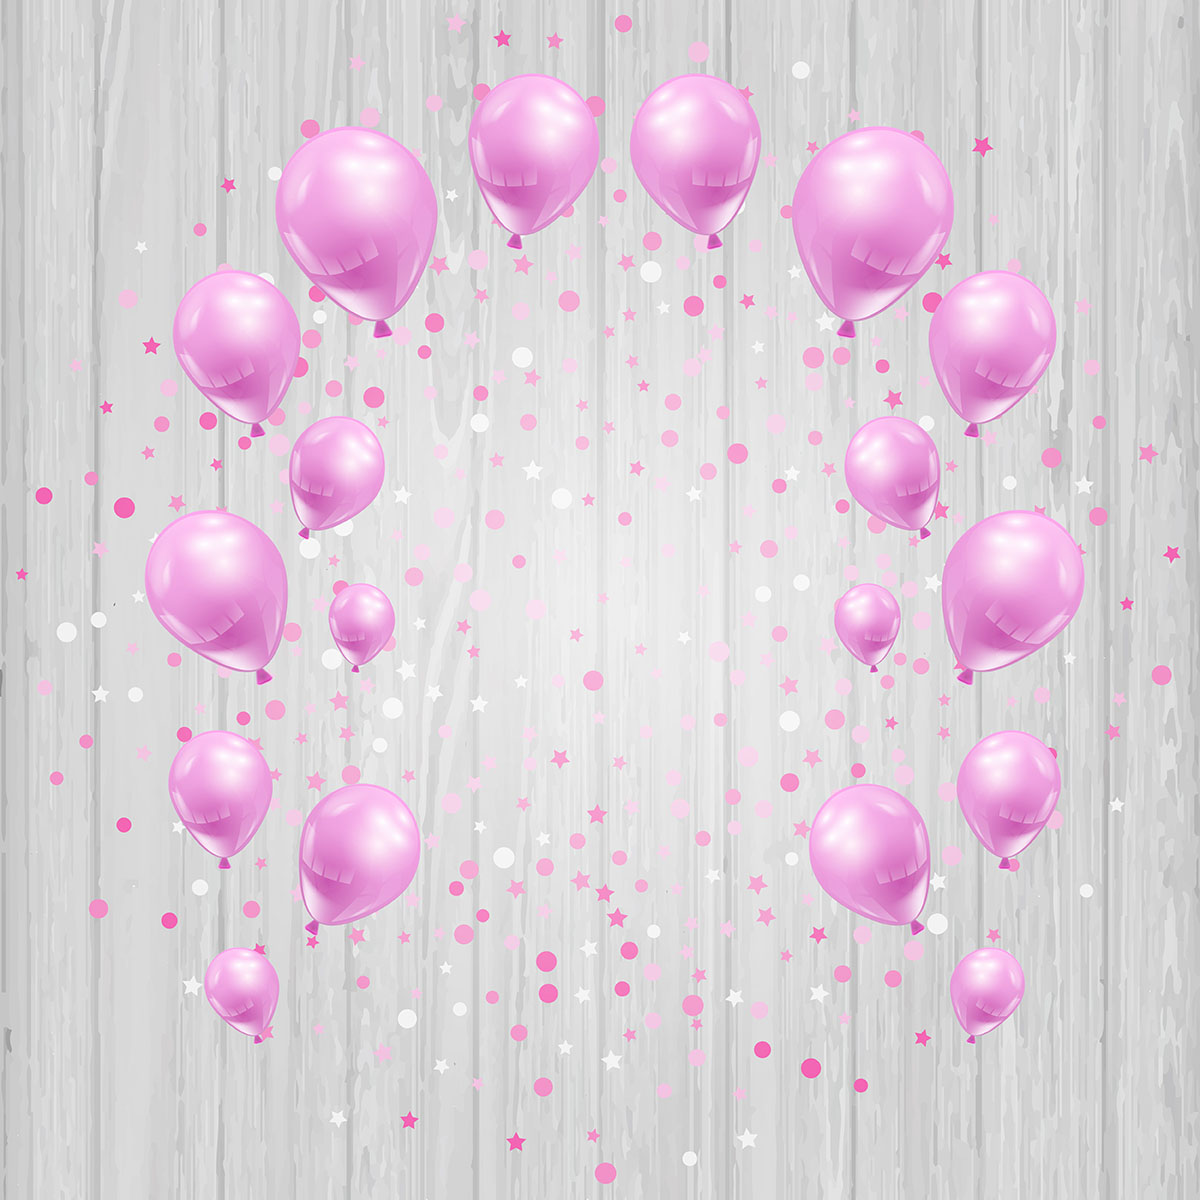 Free Falling Snow Wallpaper Download Celebration Background With Pink Balloons And Confetti